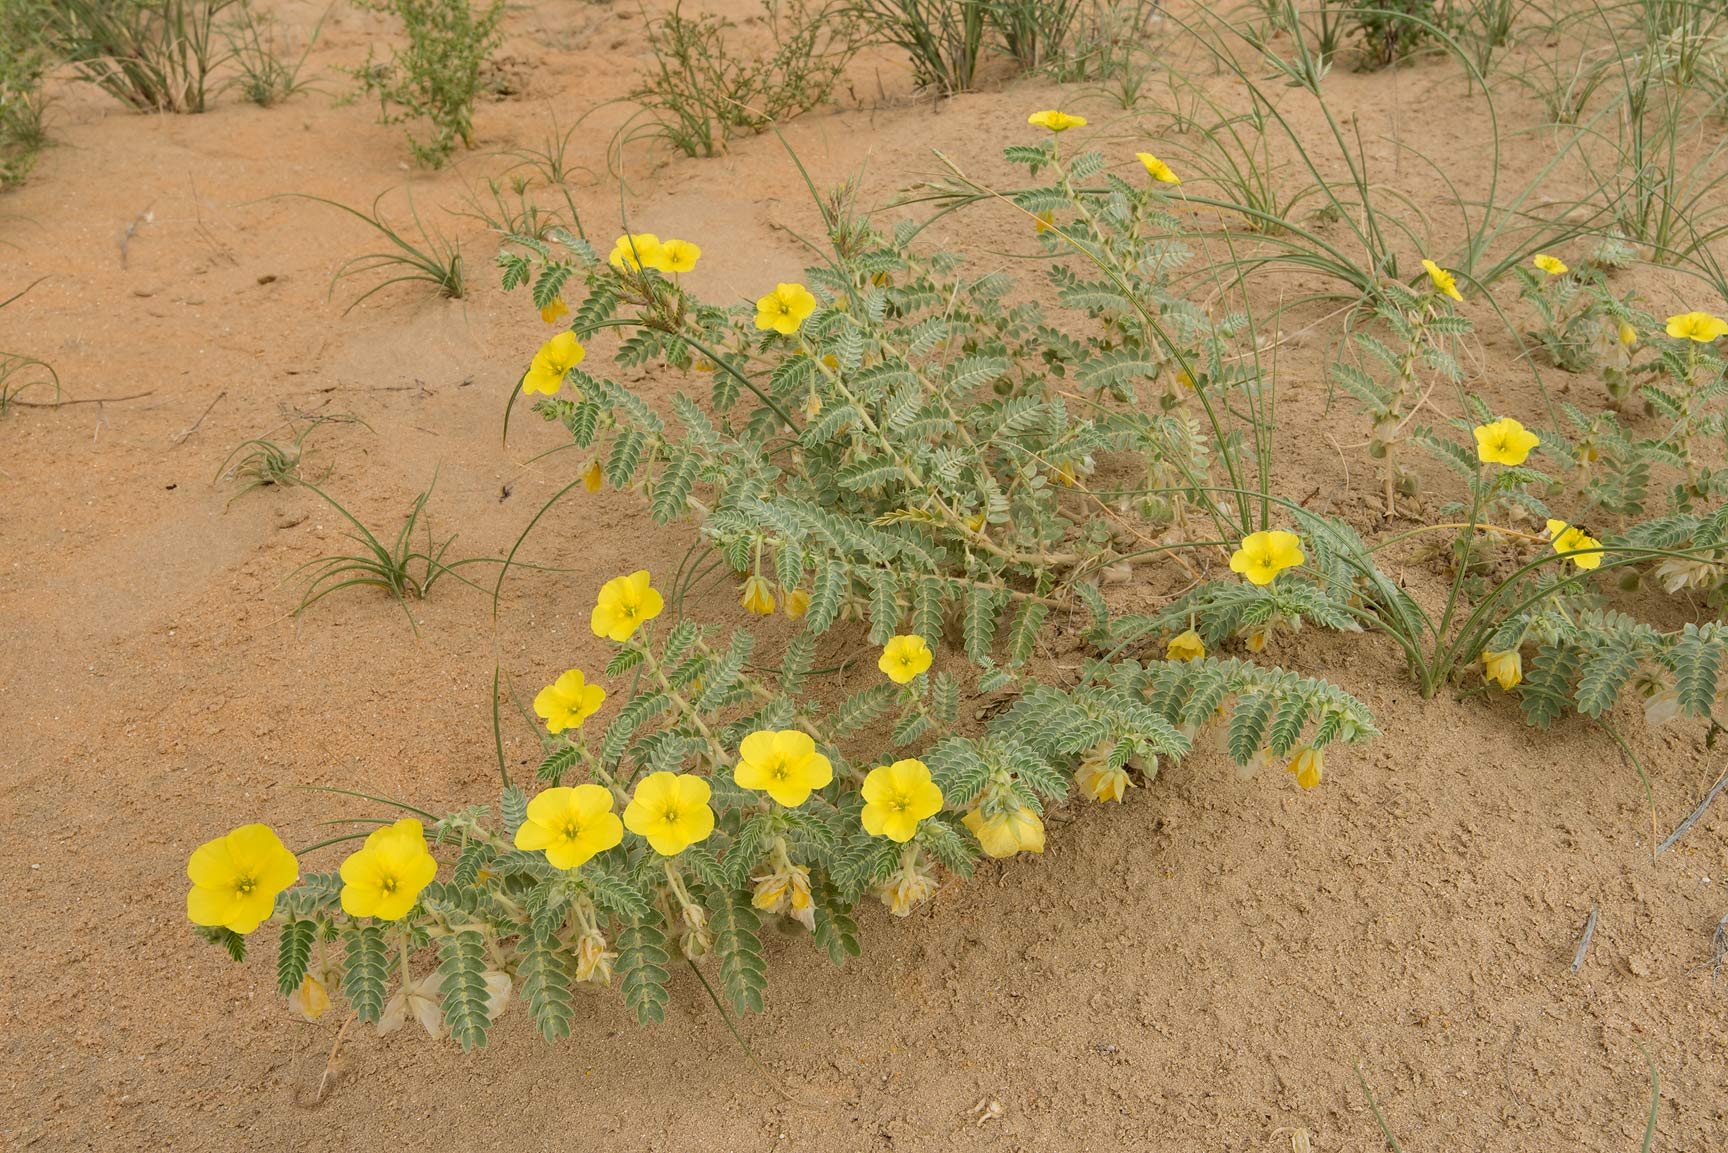 Yellow flowers of Tribulus macropterus var...Reserve near Abu Samra. Southern Qatar